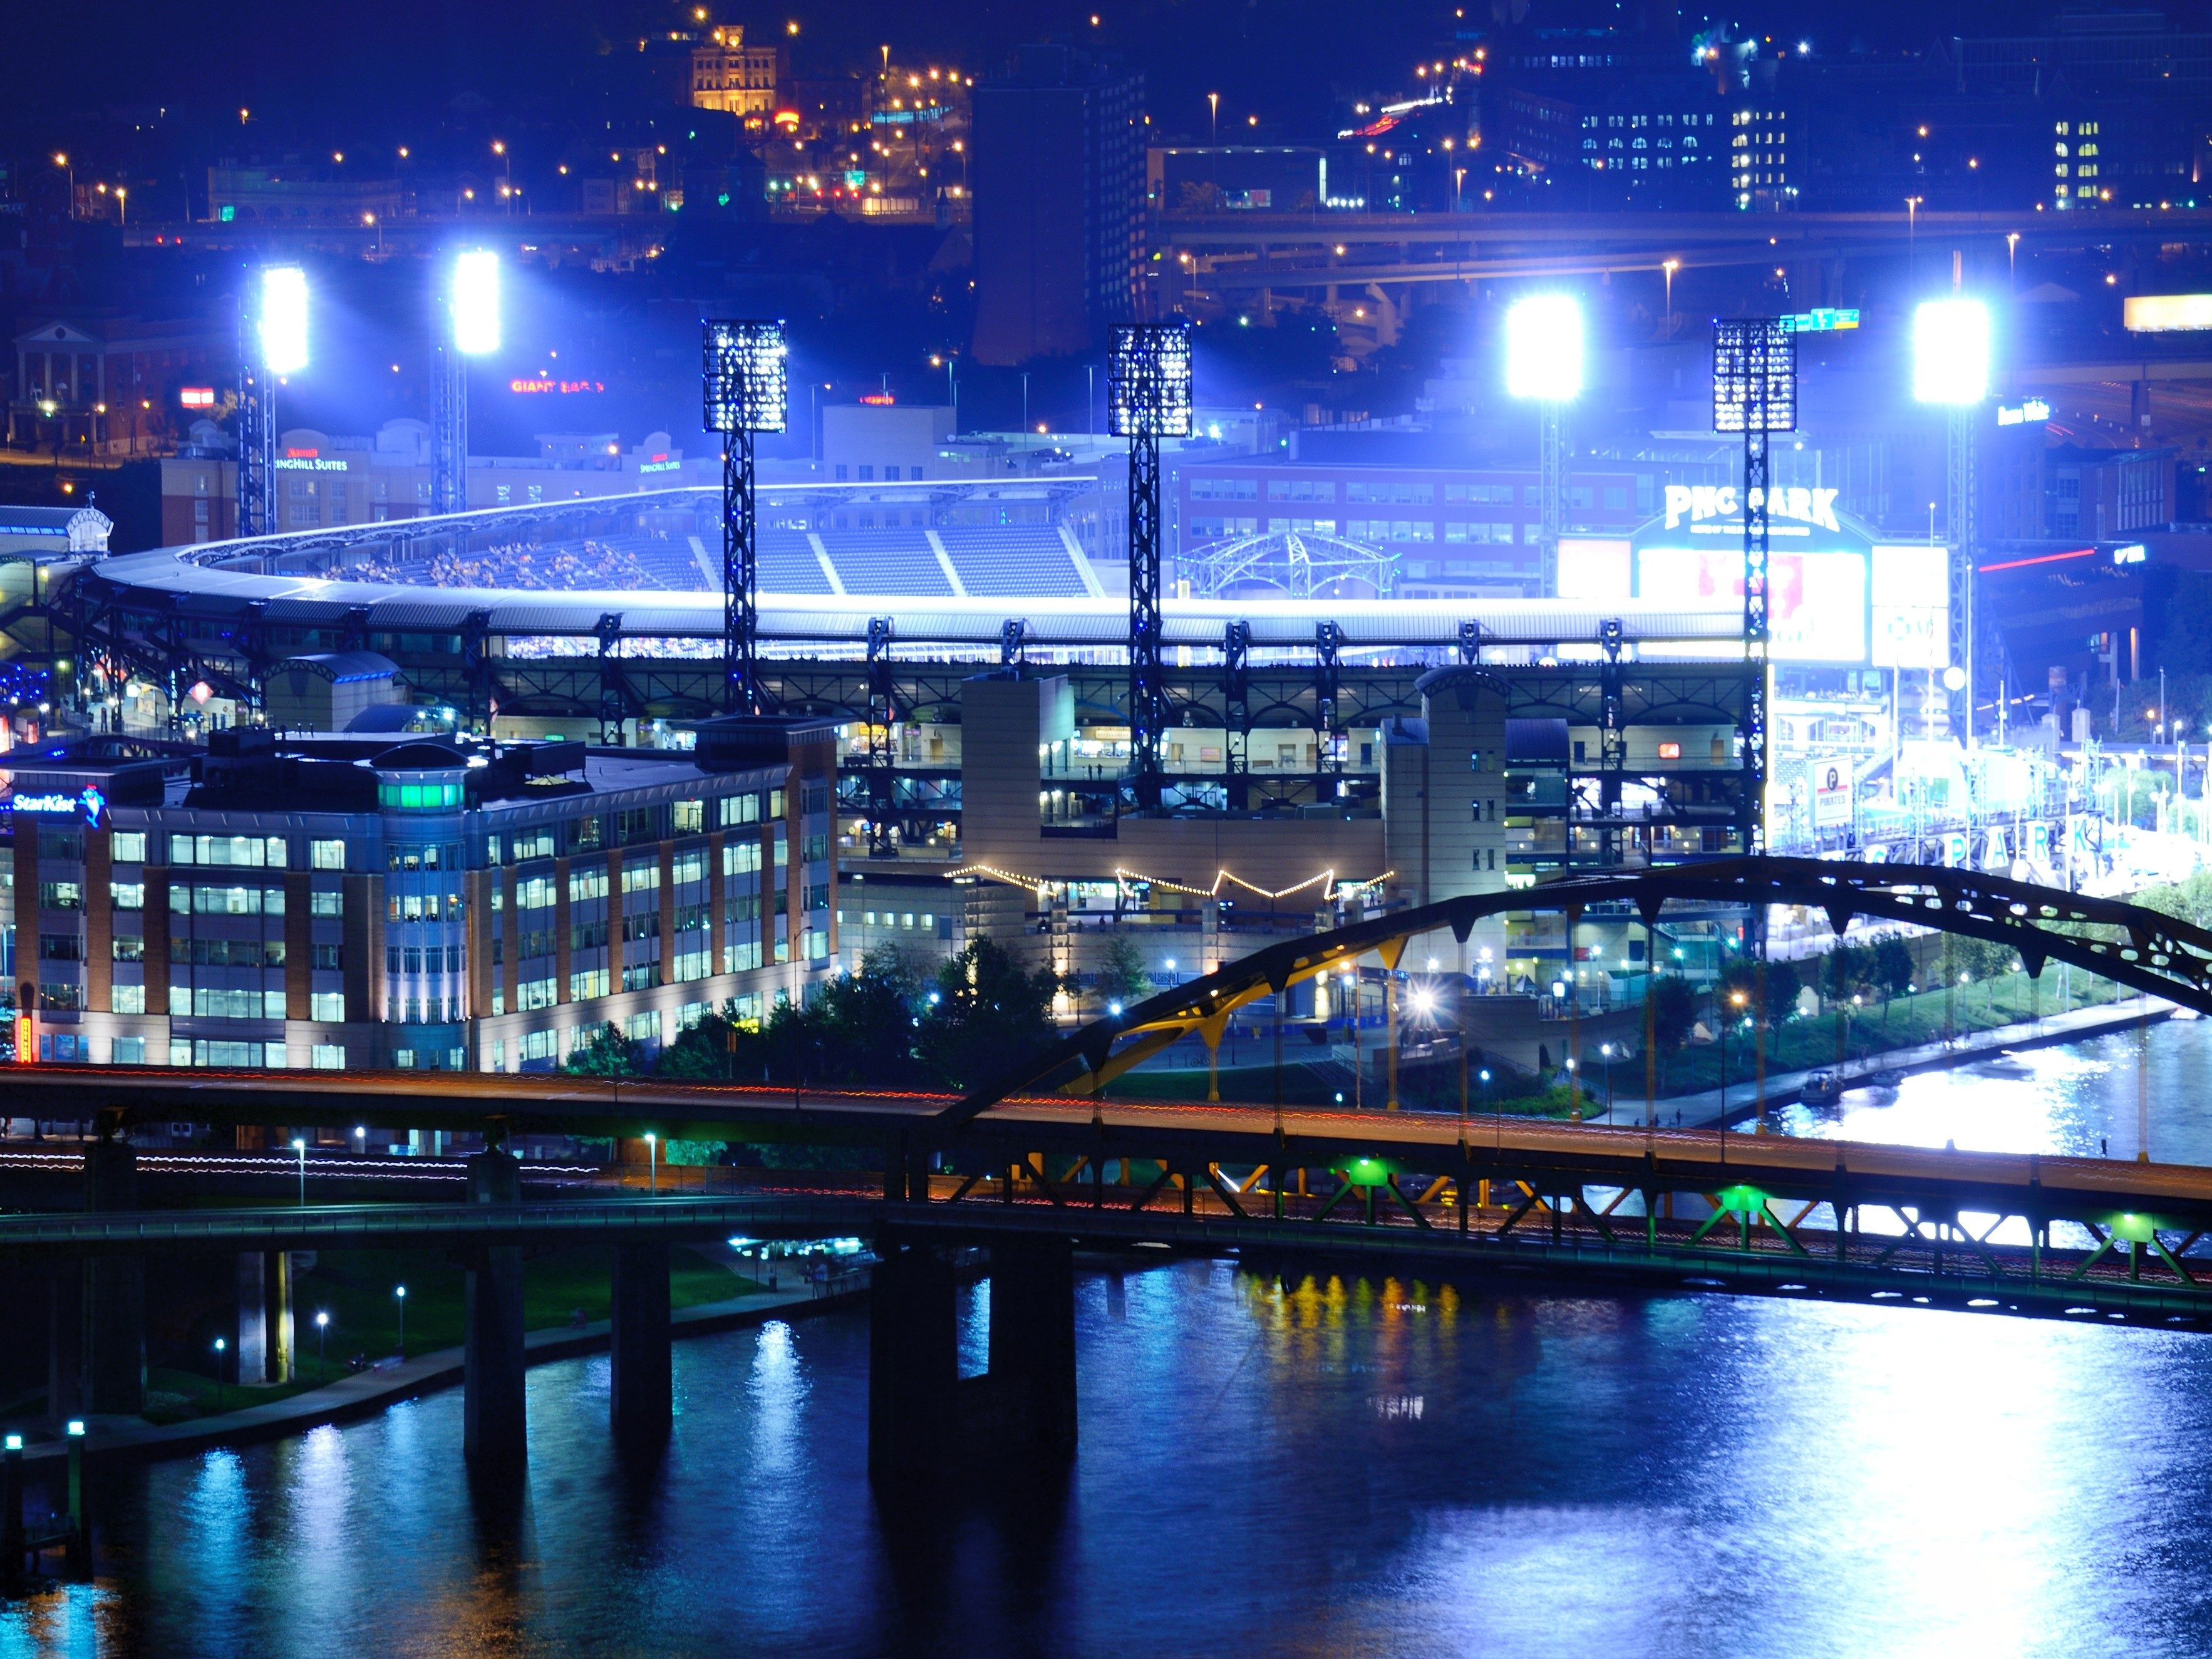 4. PNCPark - Pittsburgh, Pennsylvania; home of the Pirates.